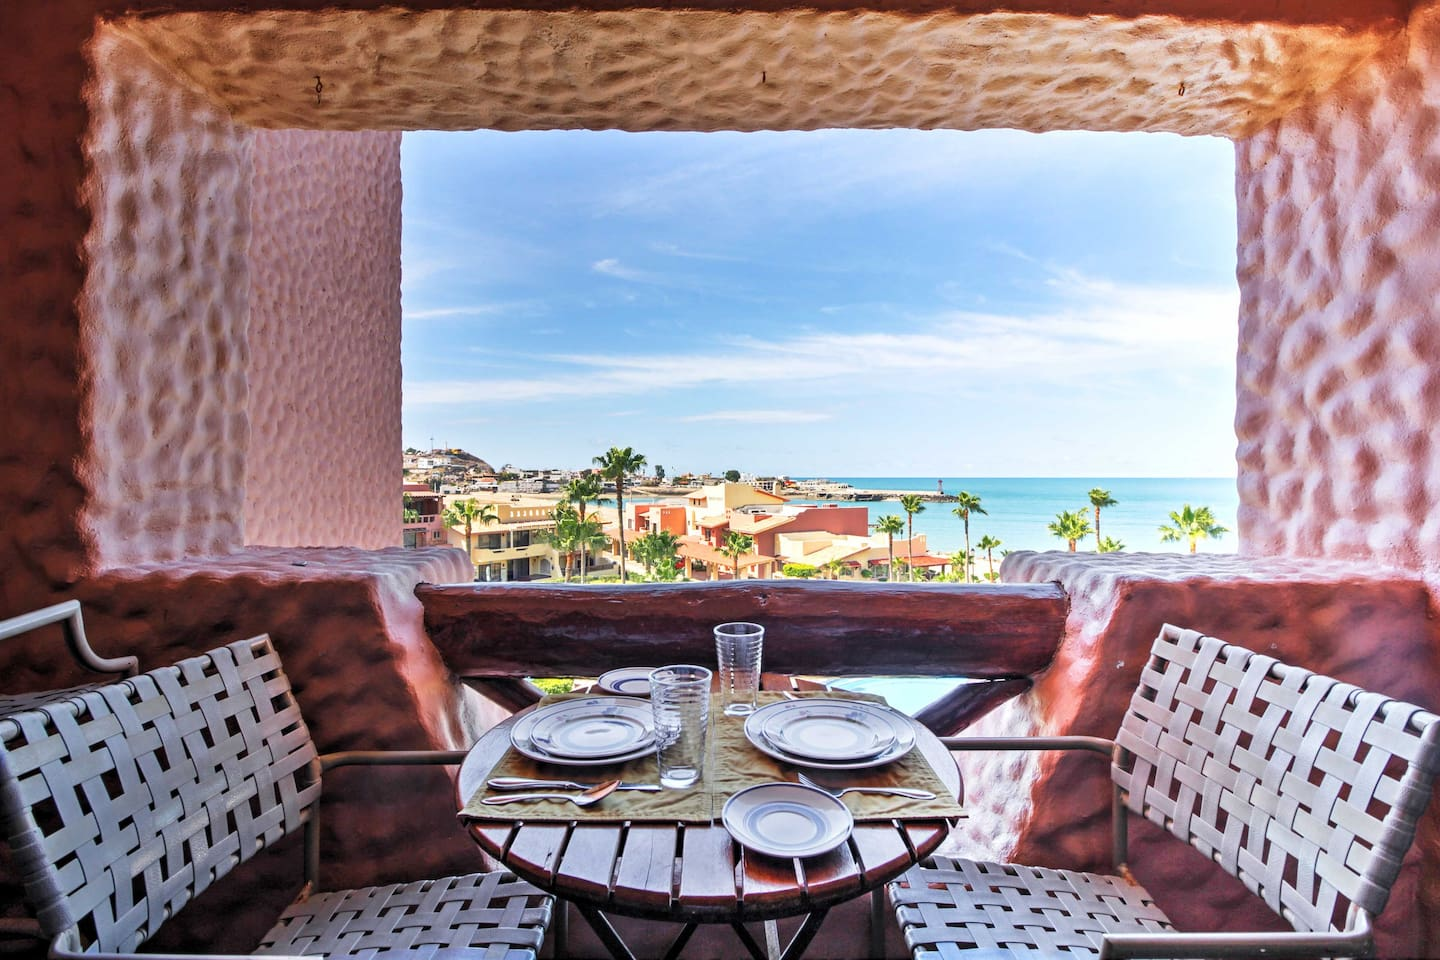 Escape to the shimmering shores of Mexico when you stay at this 2-bedroom, 2-bathroom Puerto Penasco vacation rental condo that comfortably sleeps 6!